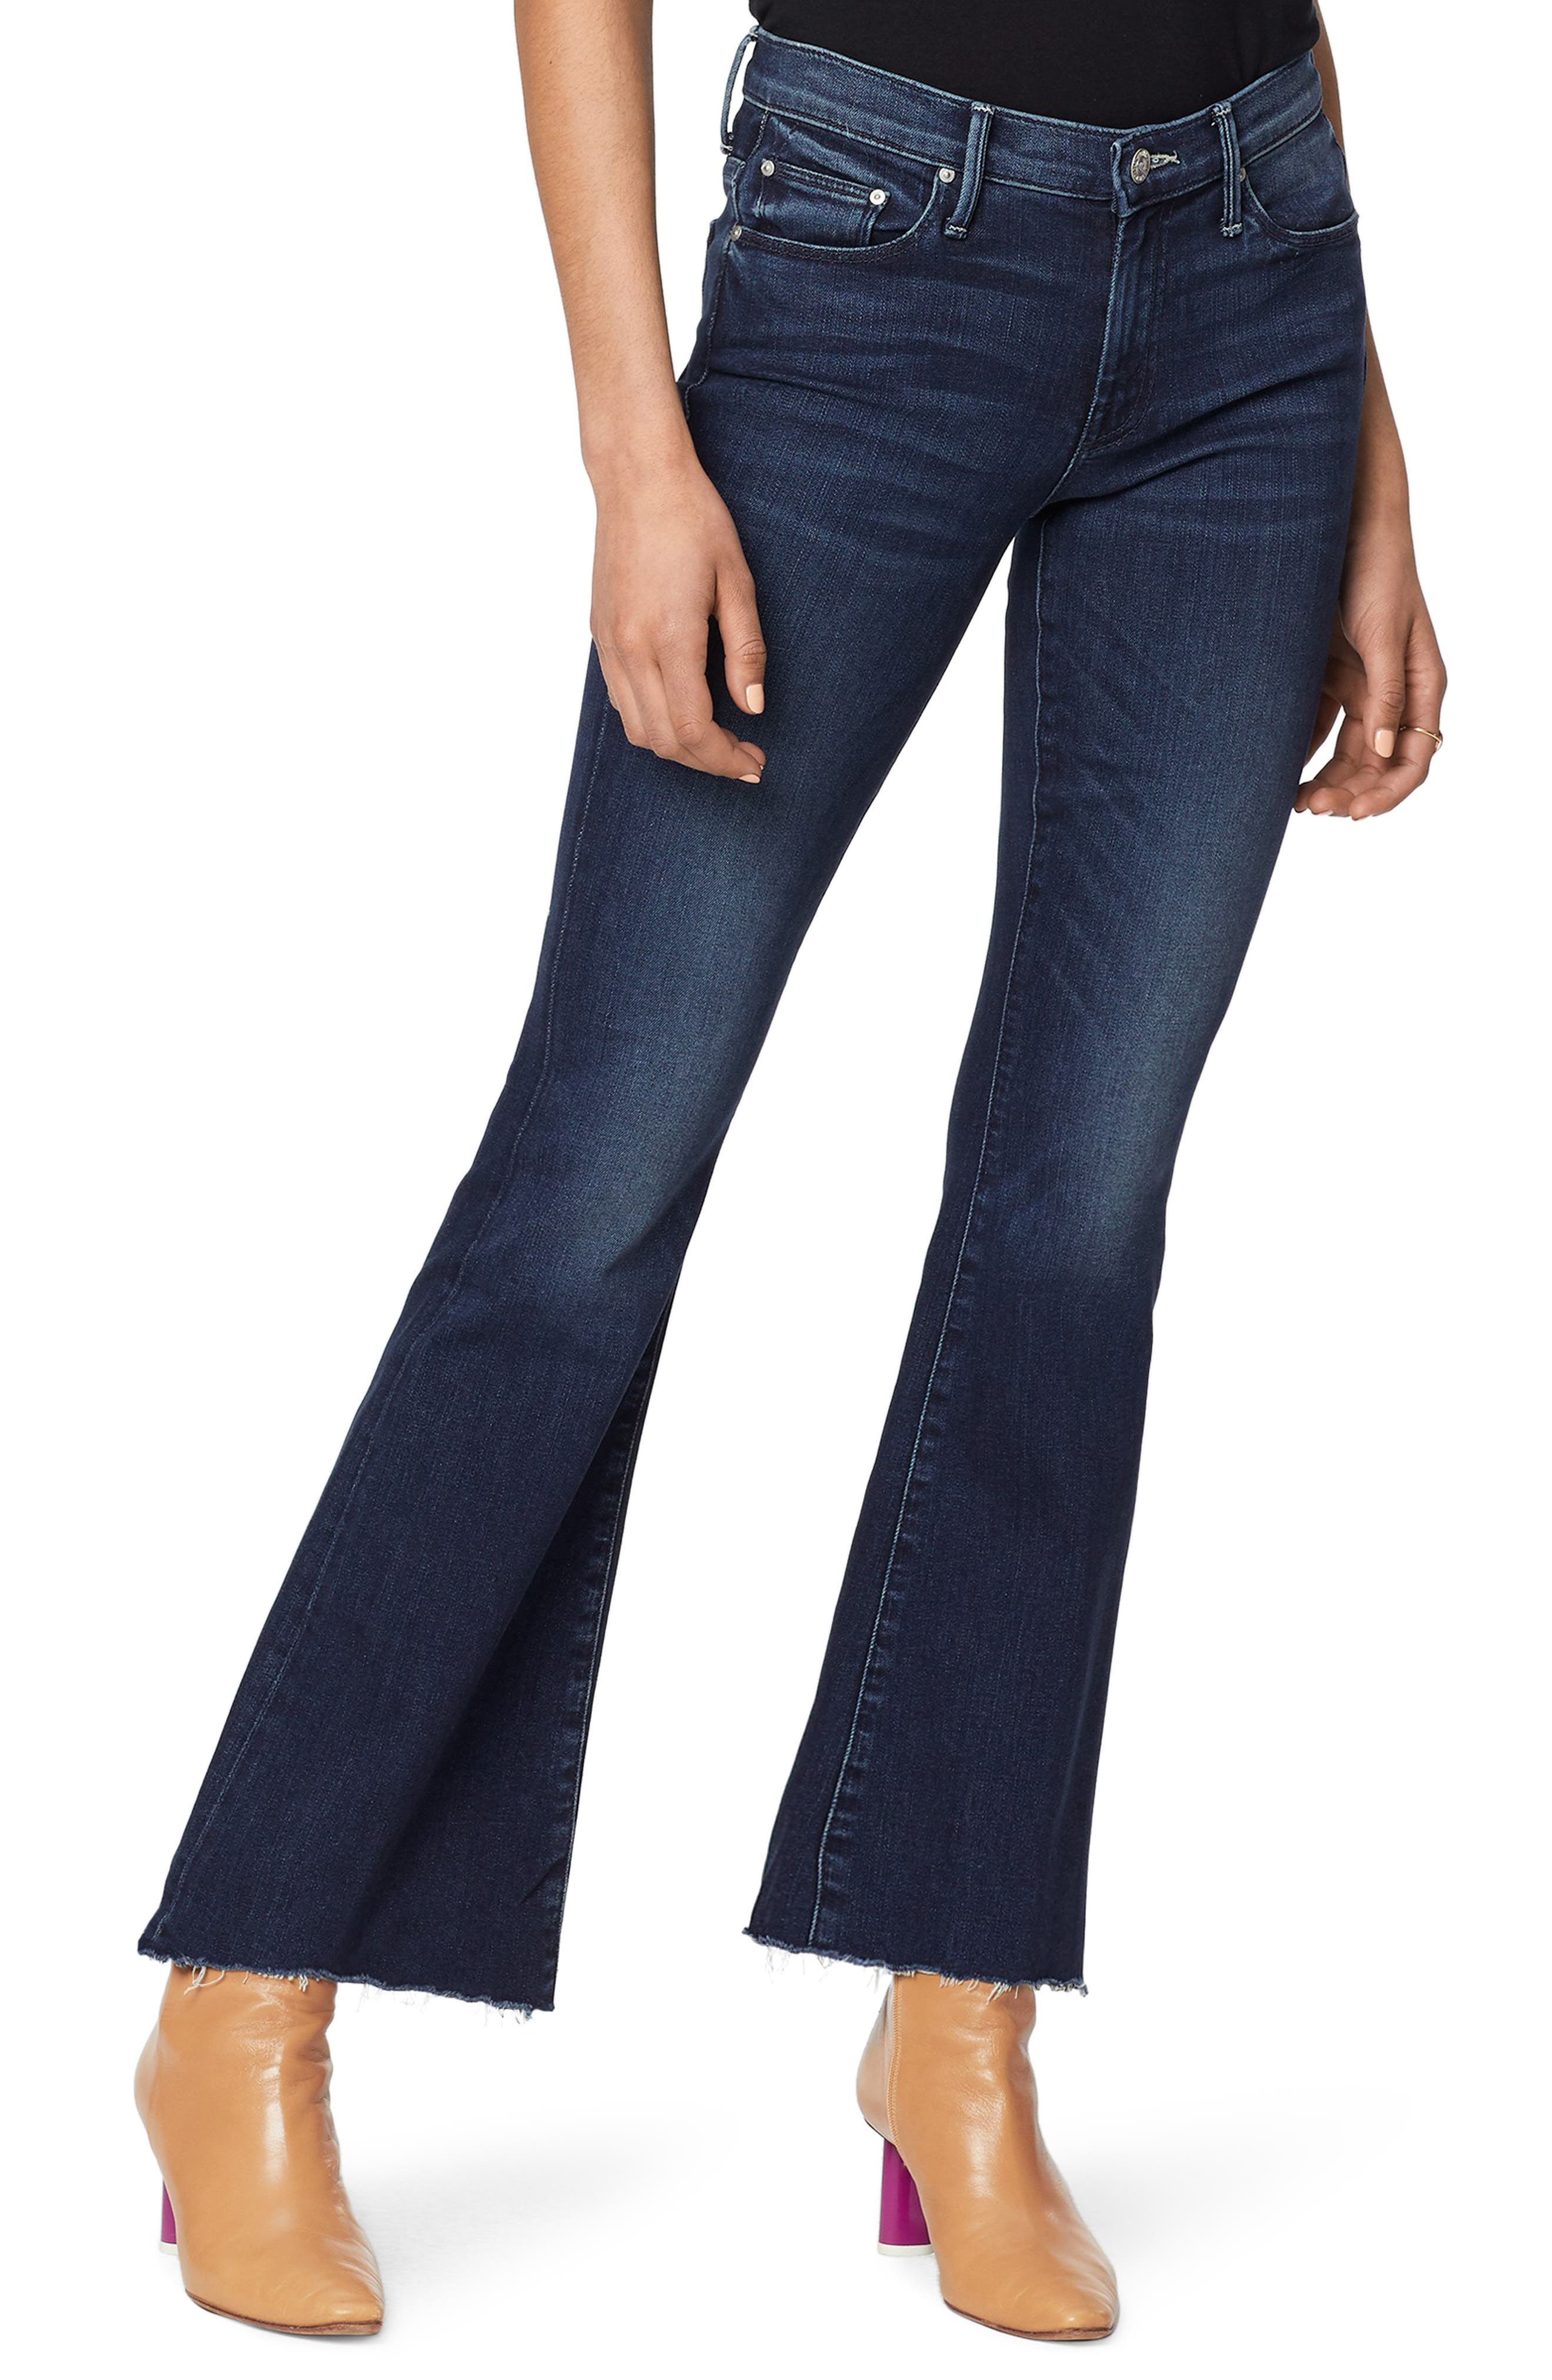 Mother Jeans The Weekend High Waist Fray Hem Flare Jeans